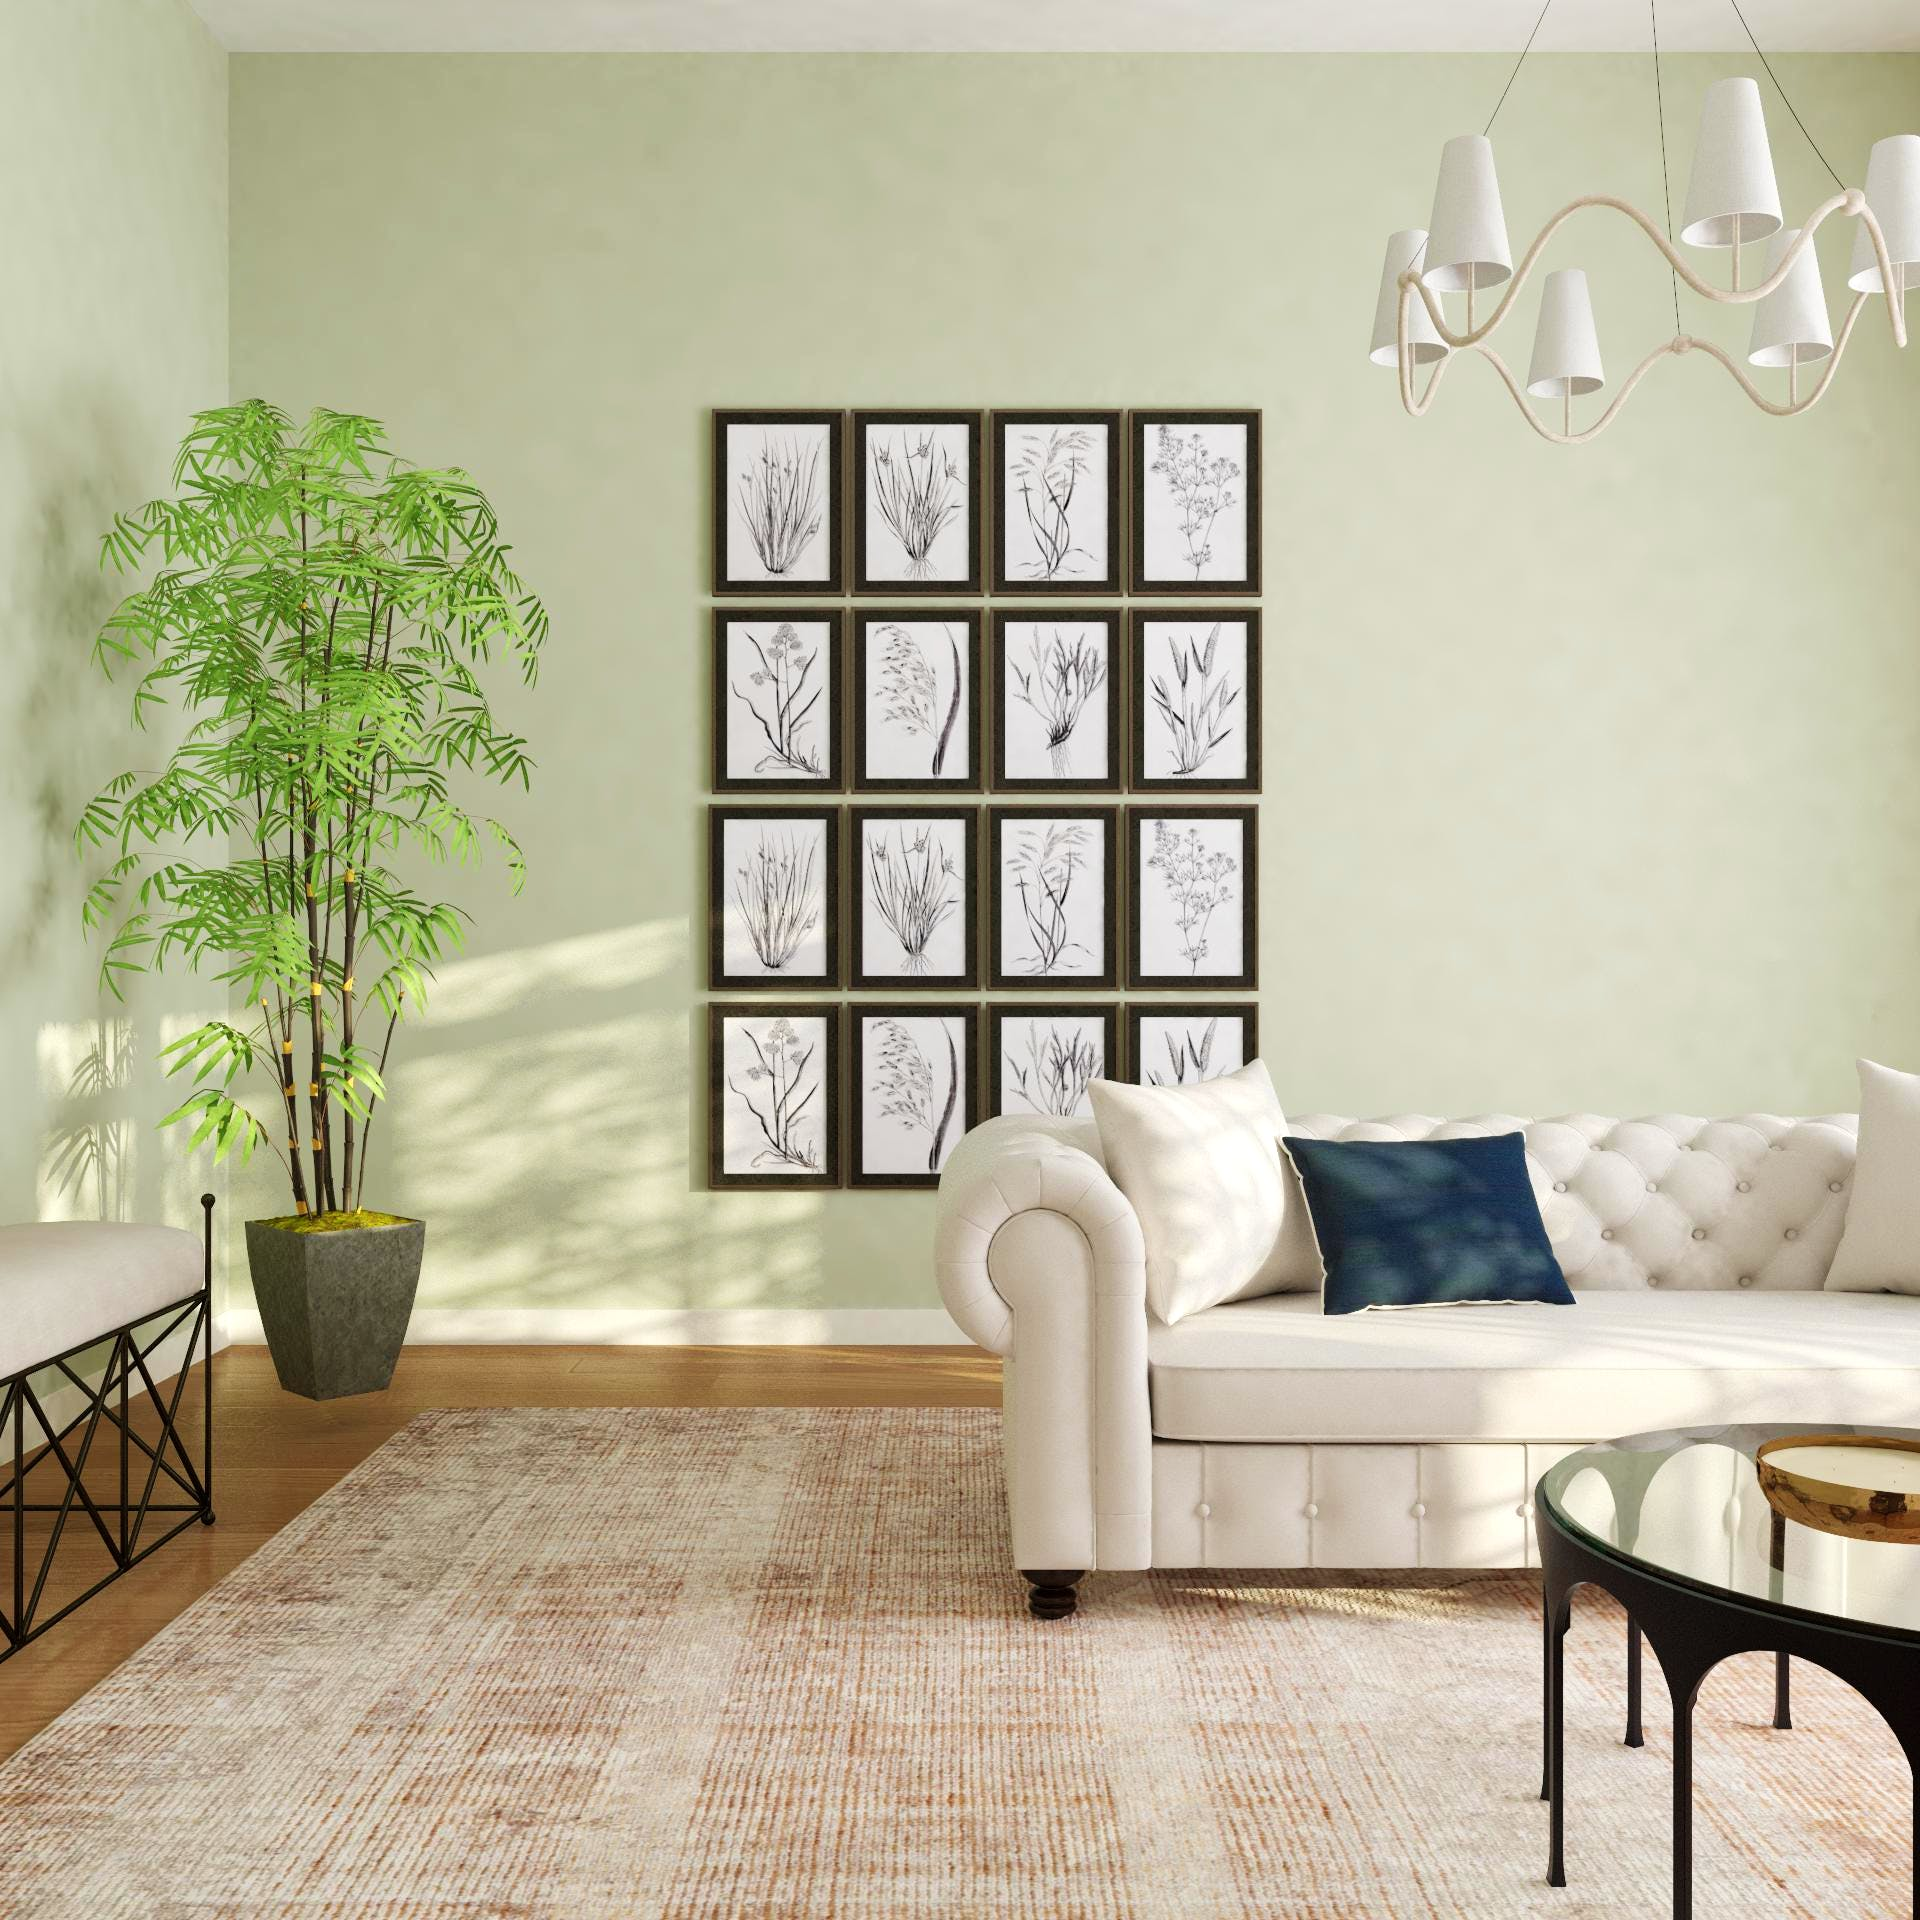 Grid Gallery Wall in a Transitional Space